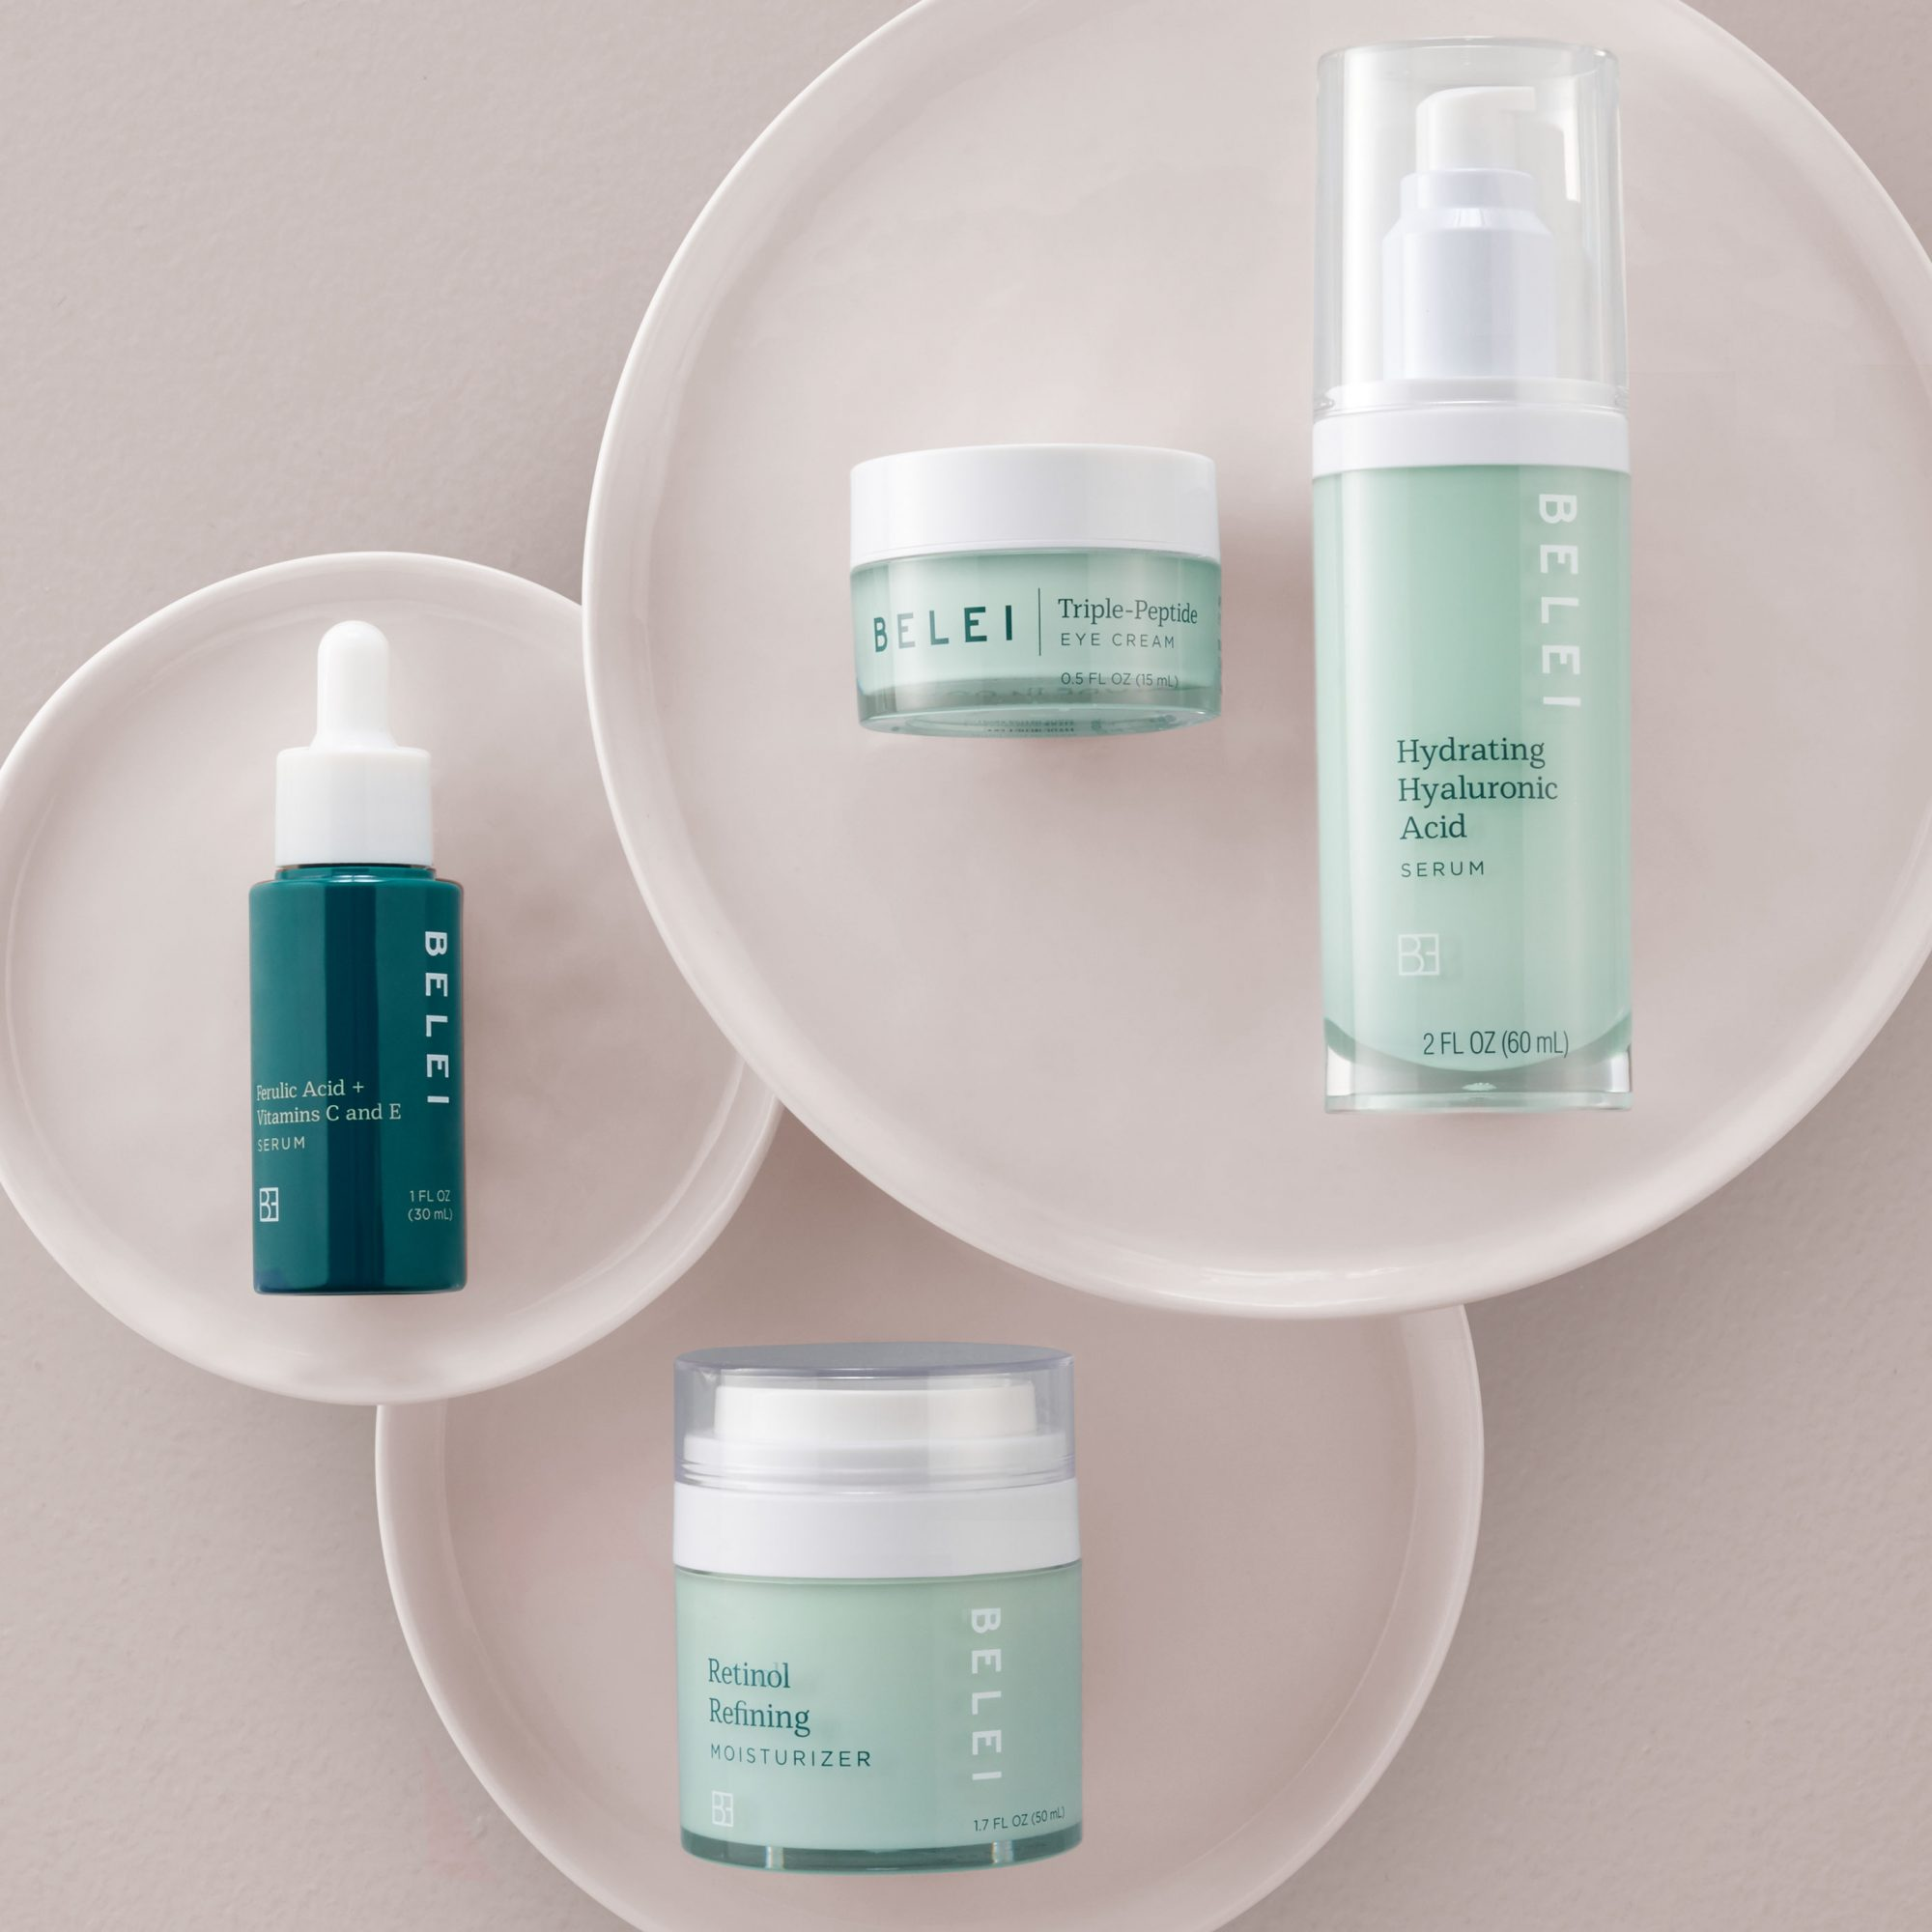 Amazon's New $40 (and Under) Skincare Line Includes Anti-Aging Products